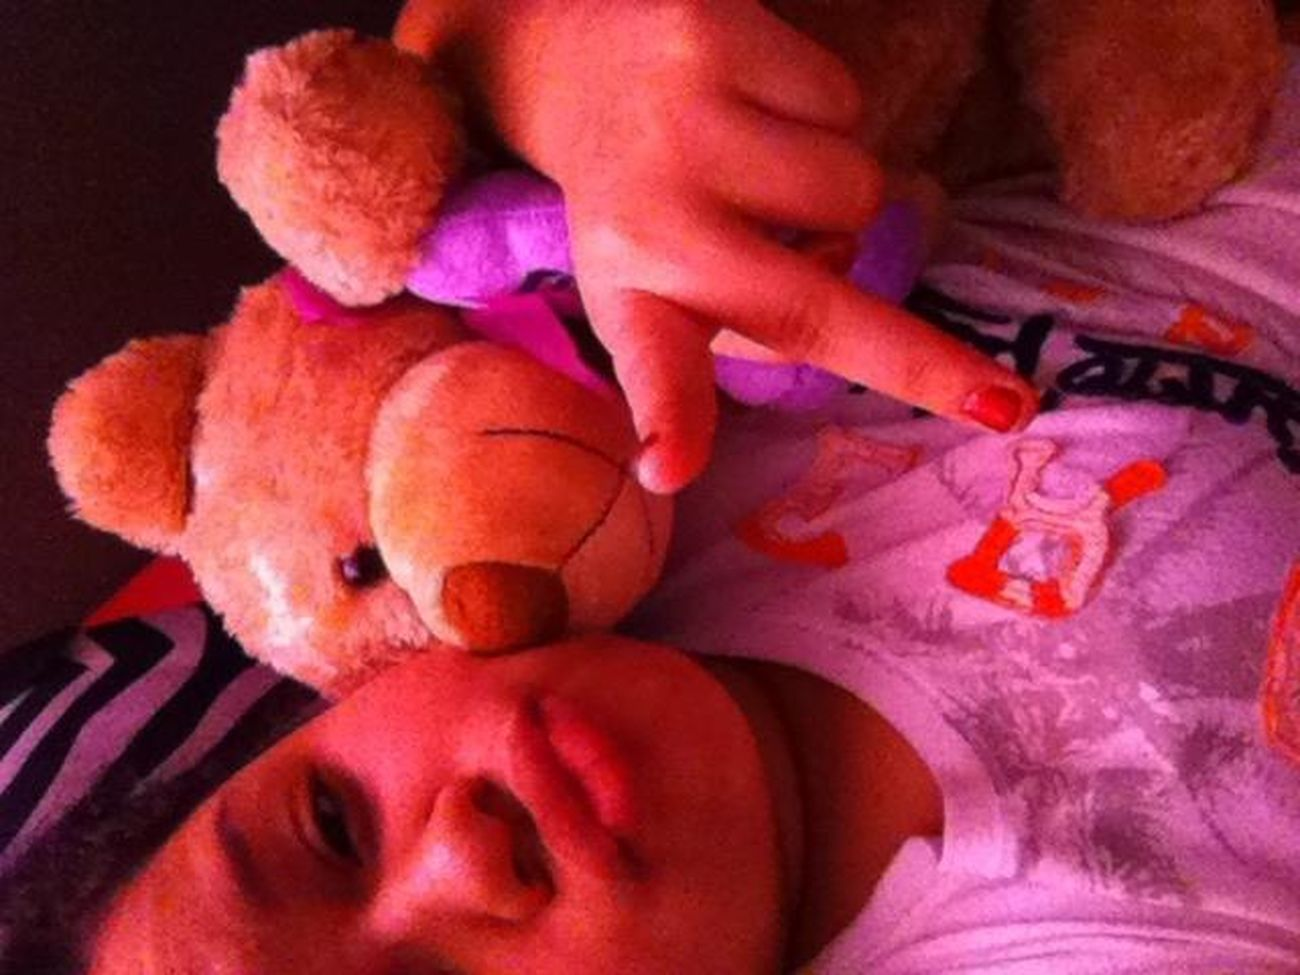 The Teddy Bear My Boyfriend Gave Me >>